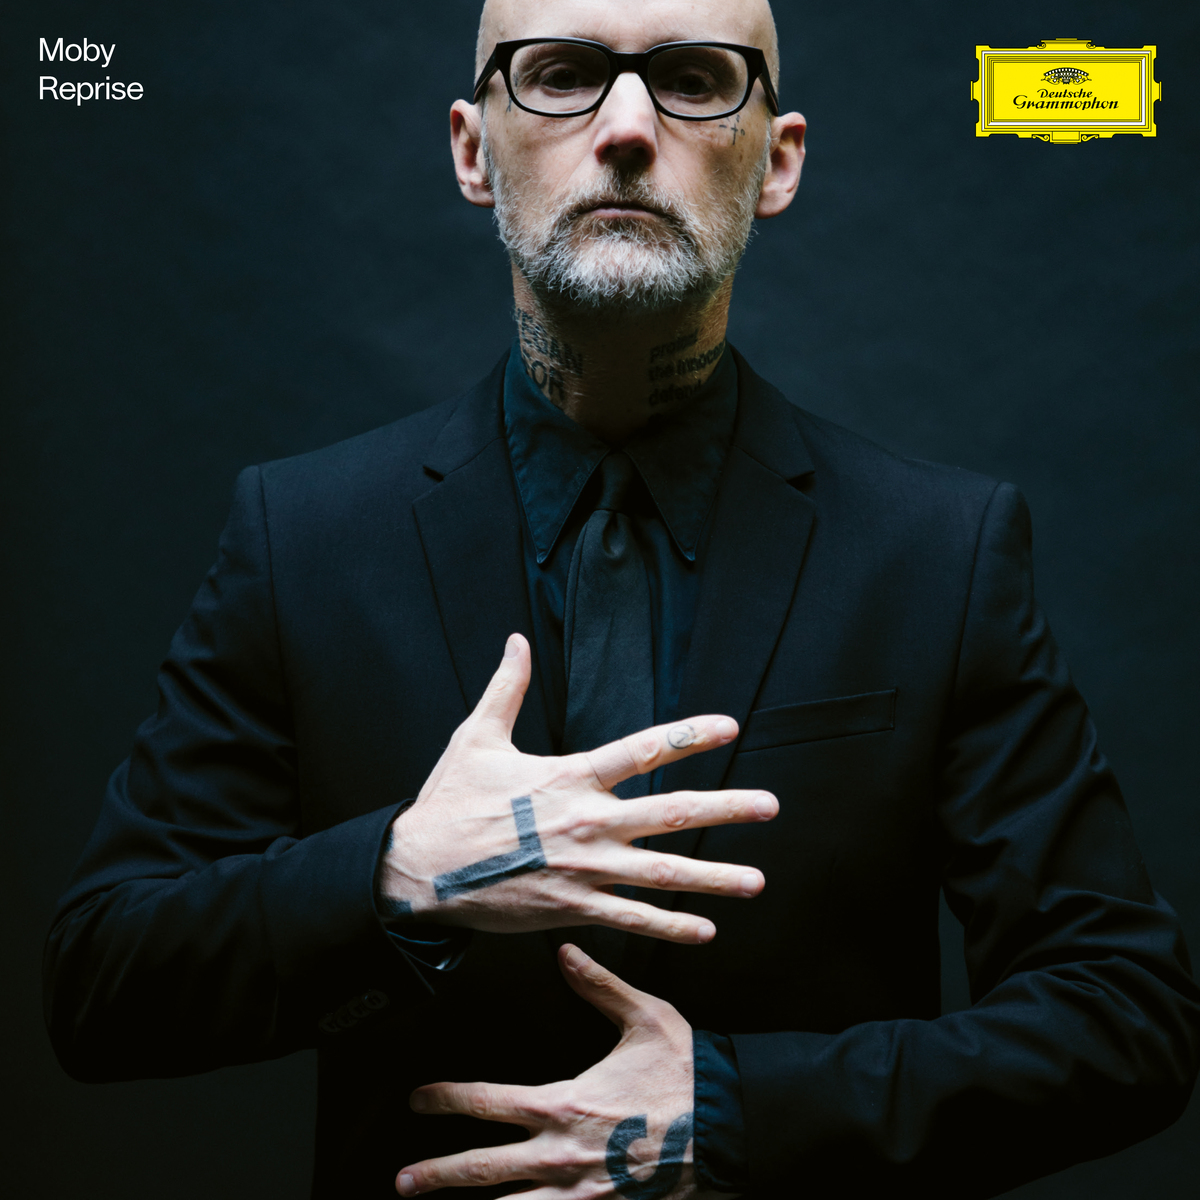 moby-reprise-cover